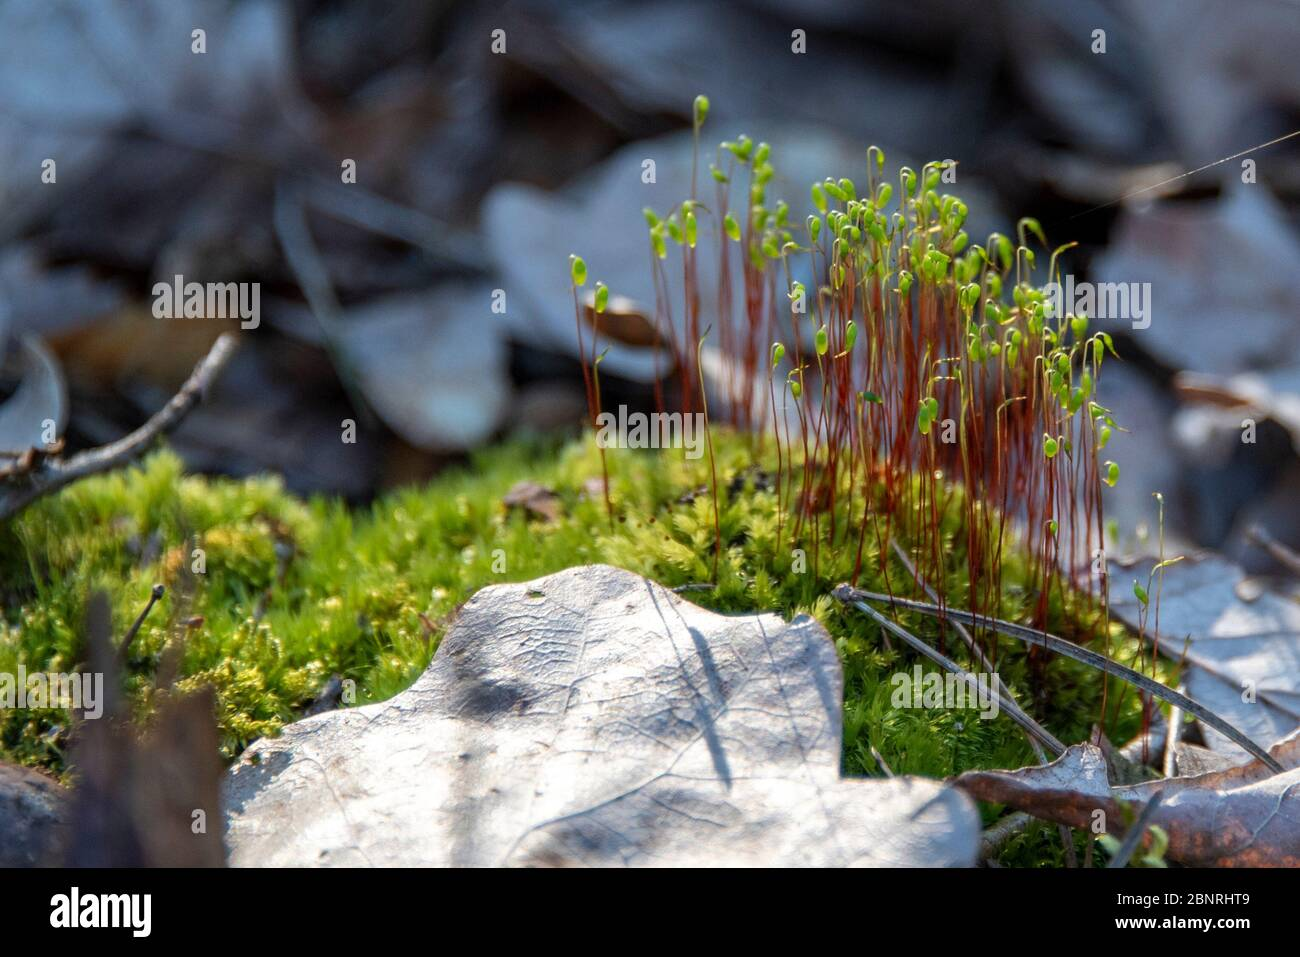 Sprouts sprout from a bed of moss Stock Photo